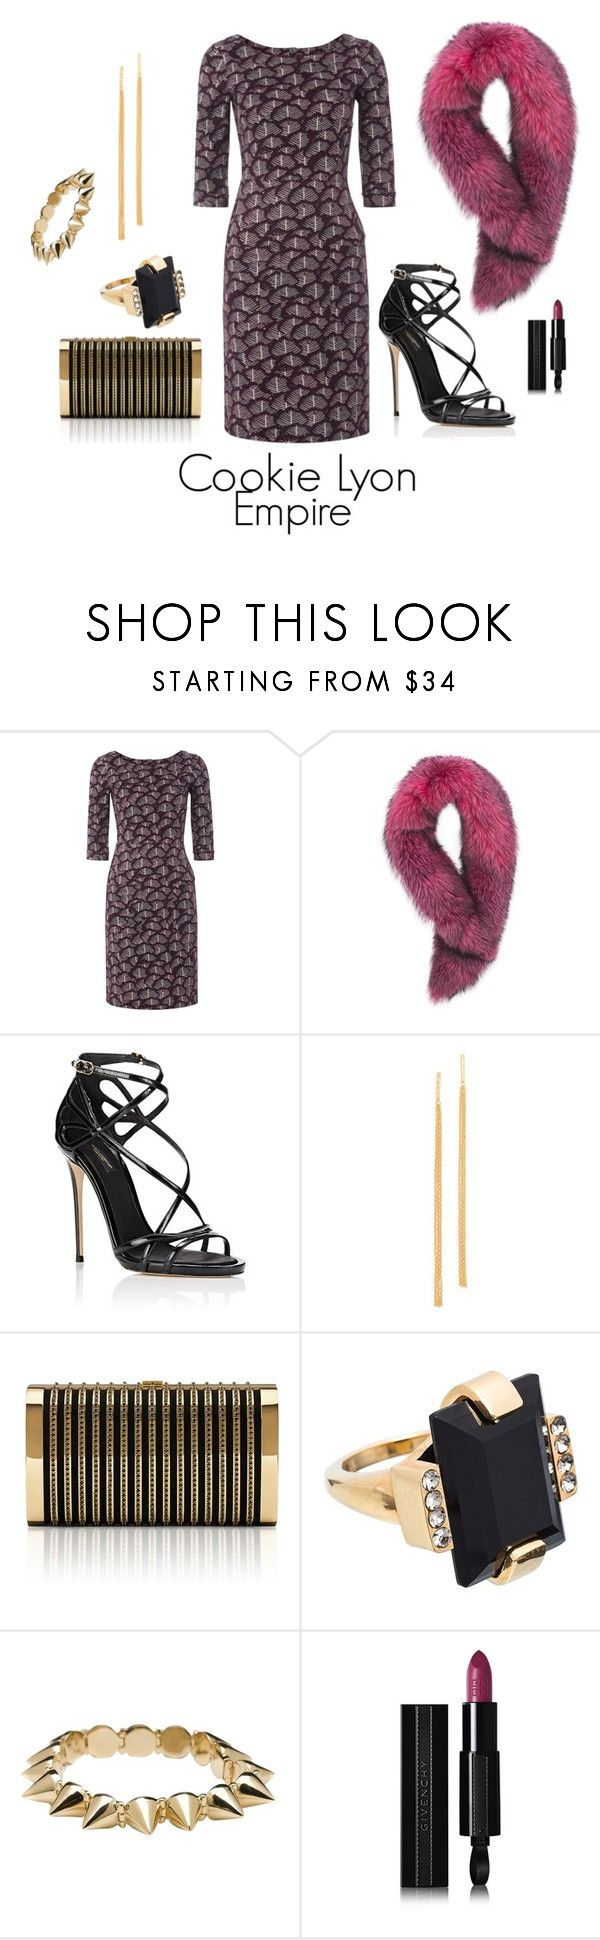 """""""Empire"""" by sparkle1277 ❤ liked on Polyvore featuring White Stuff, Andrew Marc, Dolce&Gabbana, Gorjana, Marni, CC SKYE and Givenchy"""